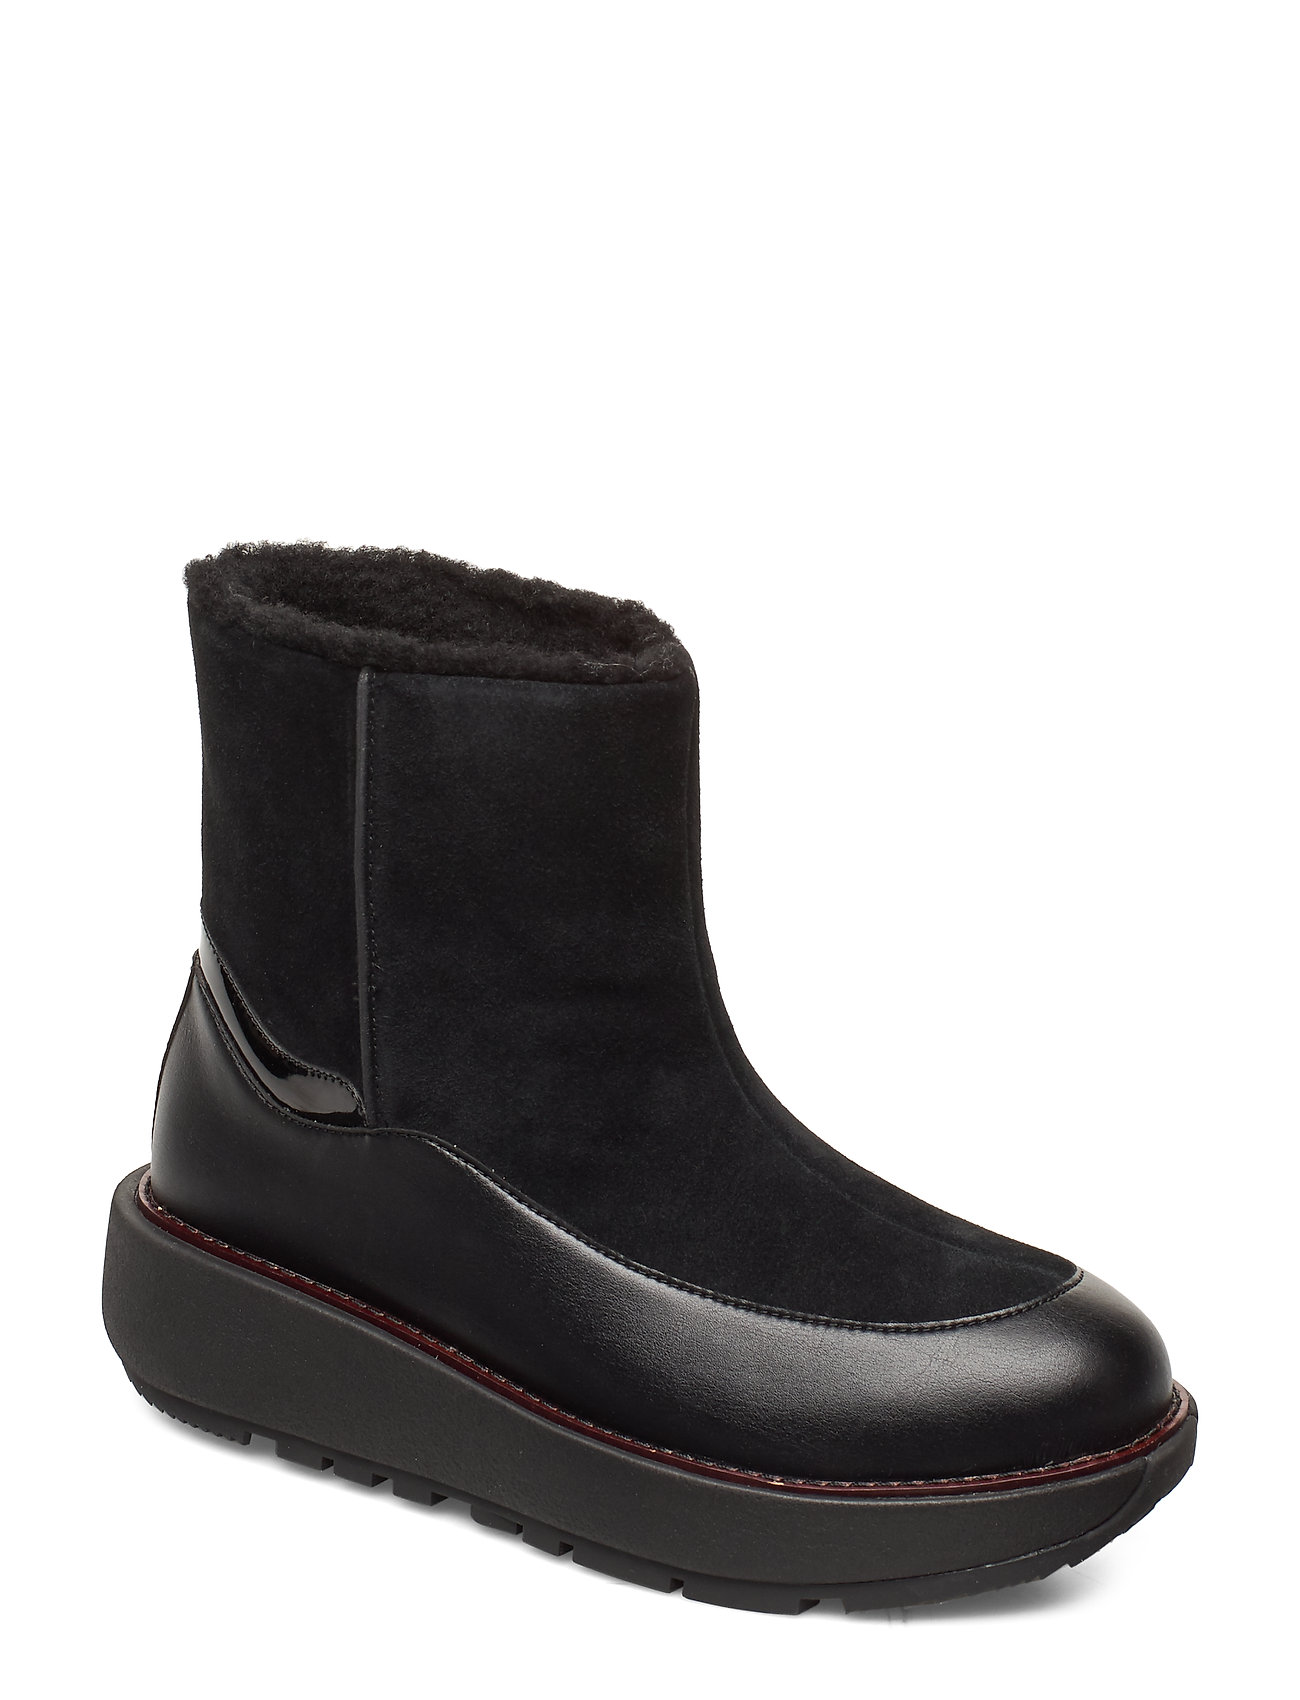 Image of Elin Snuggle Boot Shoes Boots Ankle Boots Ankle Boots Flat Heel Sort FitFlop (3233523709)